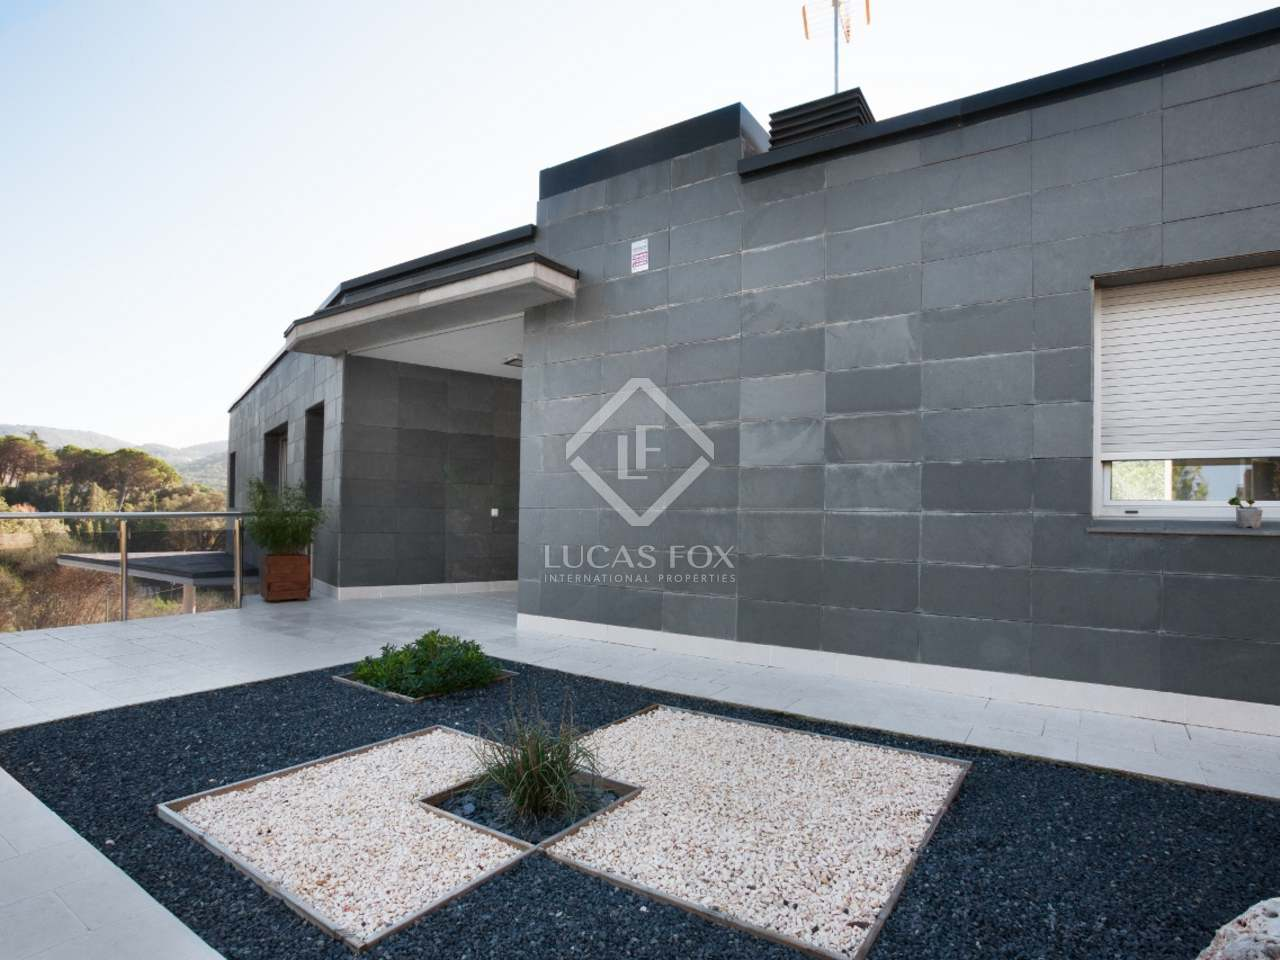 4 bedroom contemporary house for sale in vallromanes for Modern house for sale near me